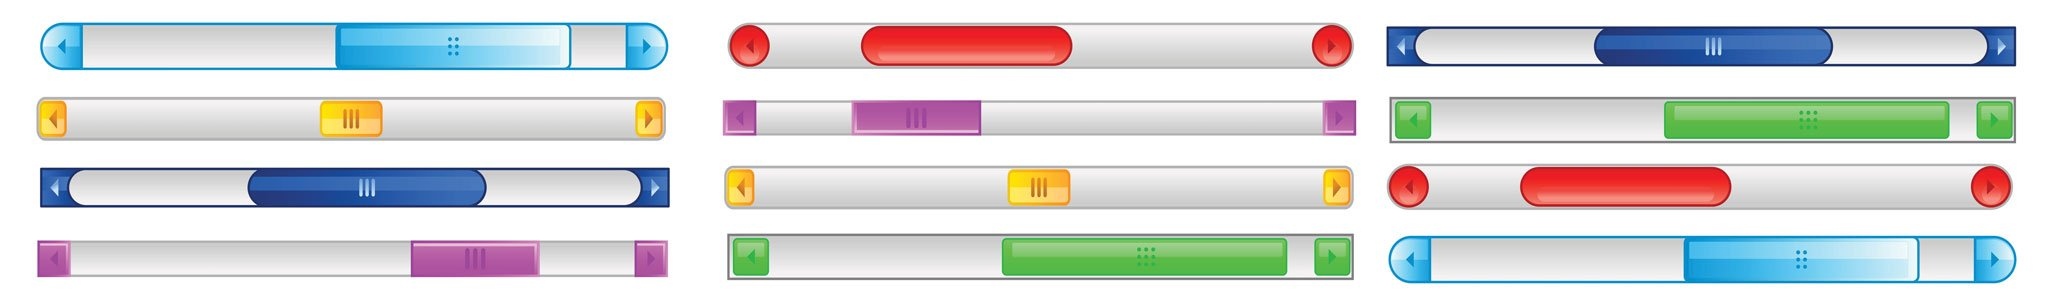 How to Always Show Scroll Bars in Mac OS X